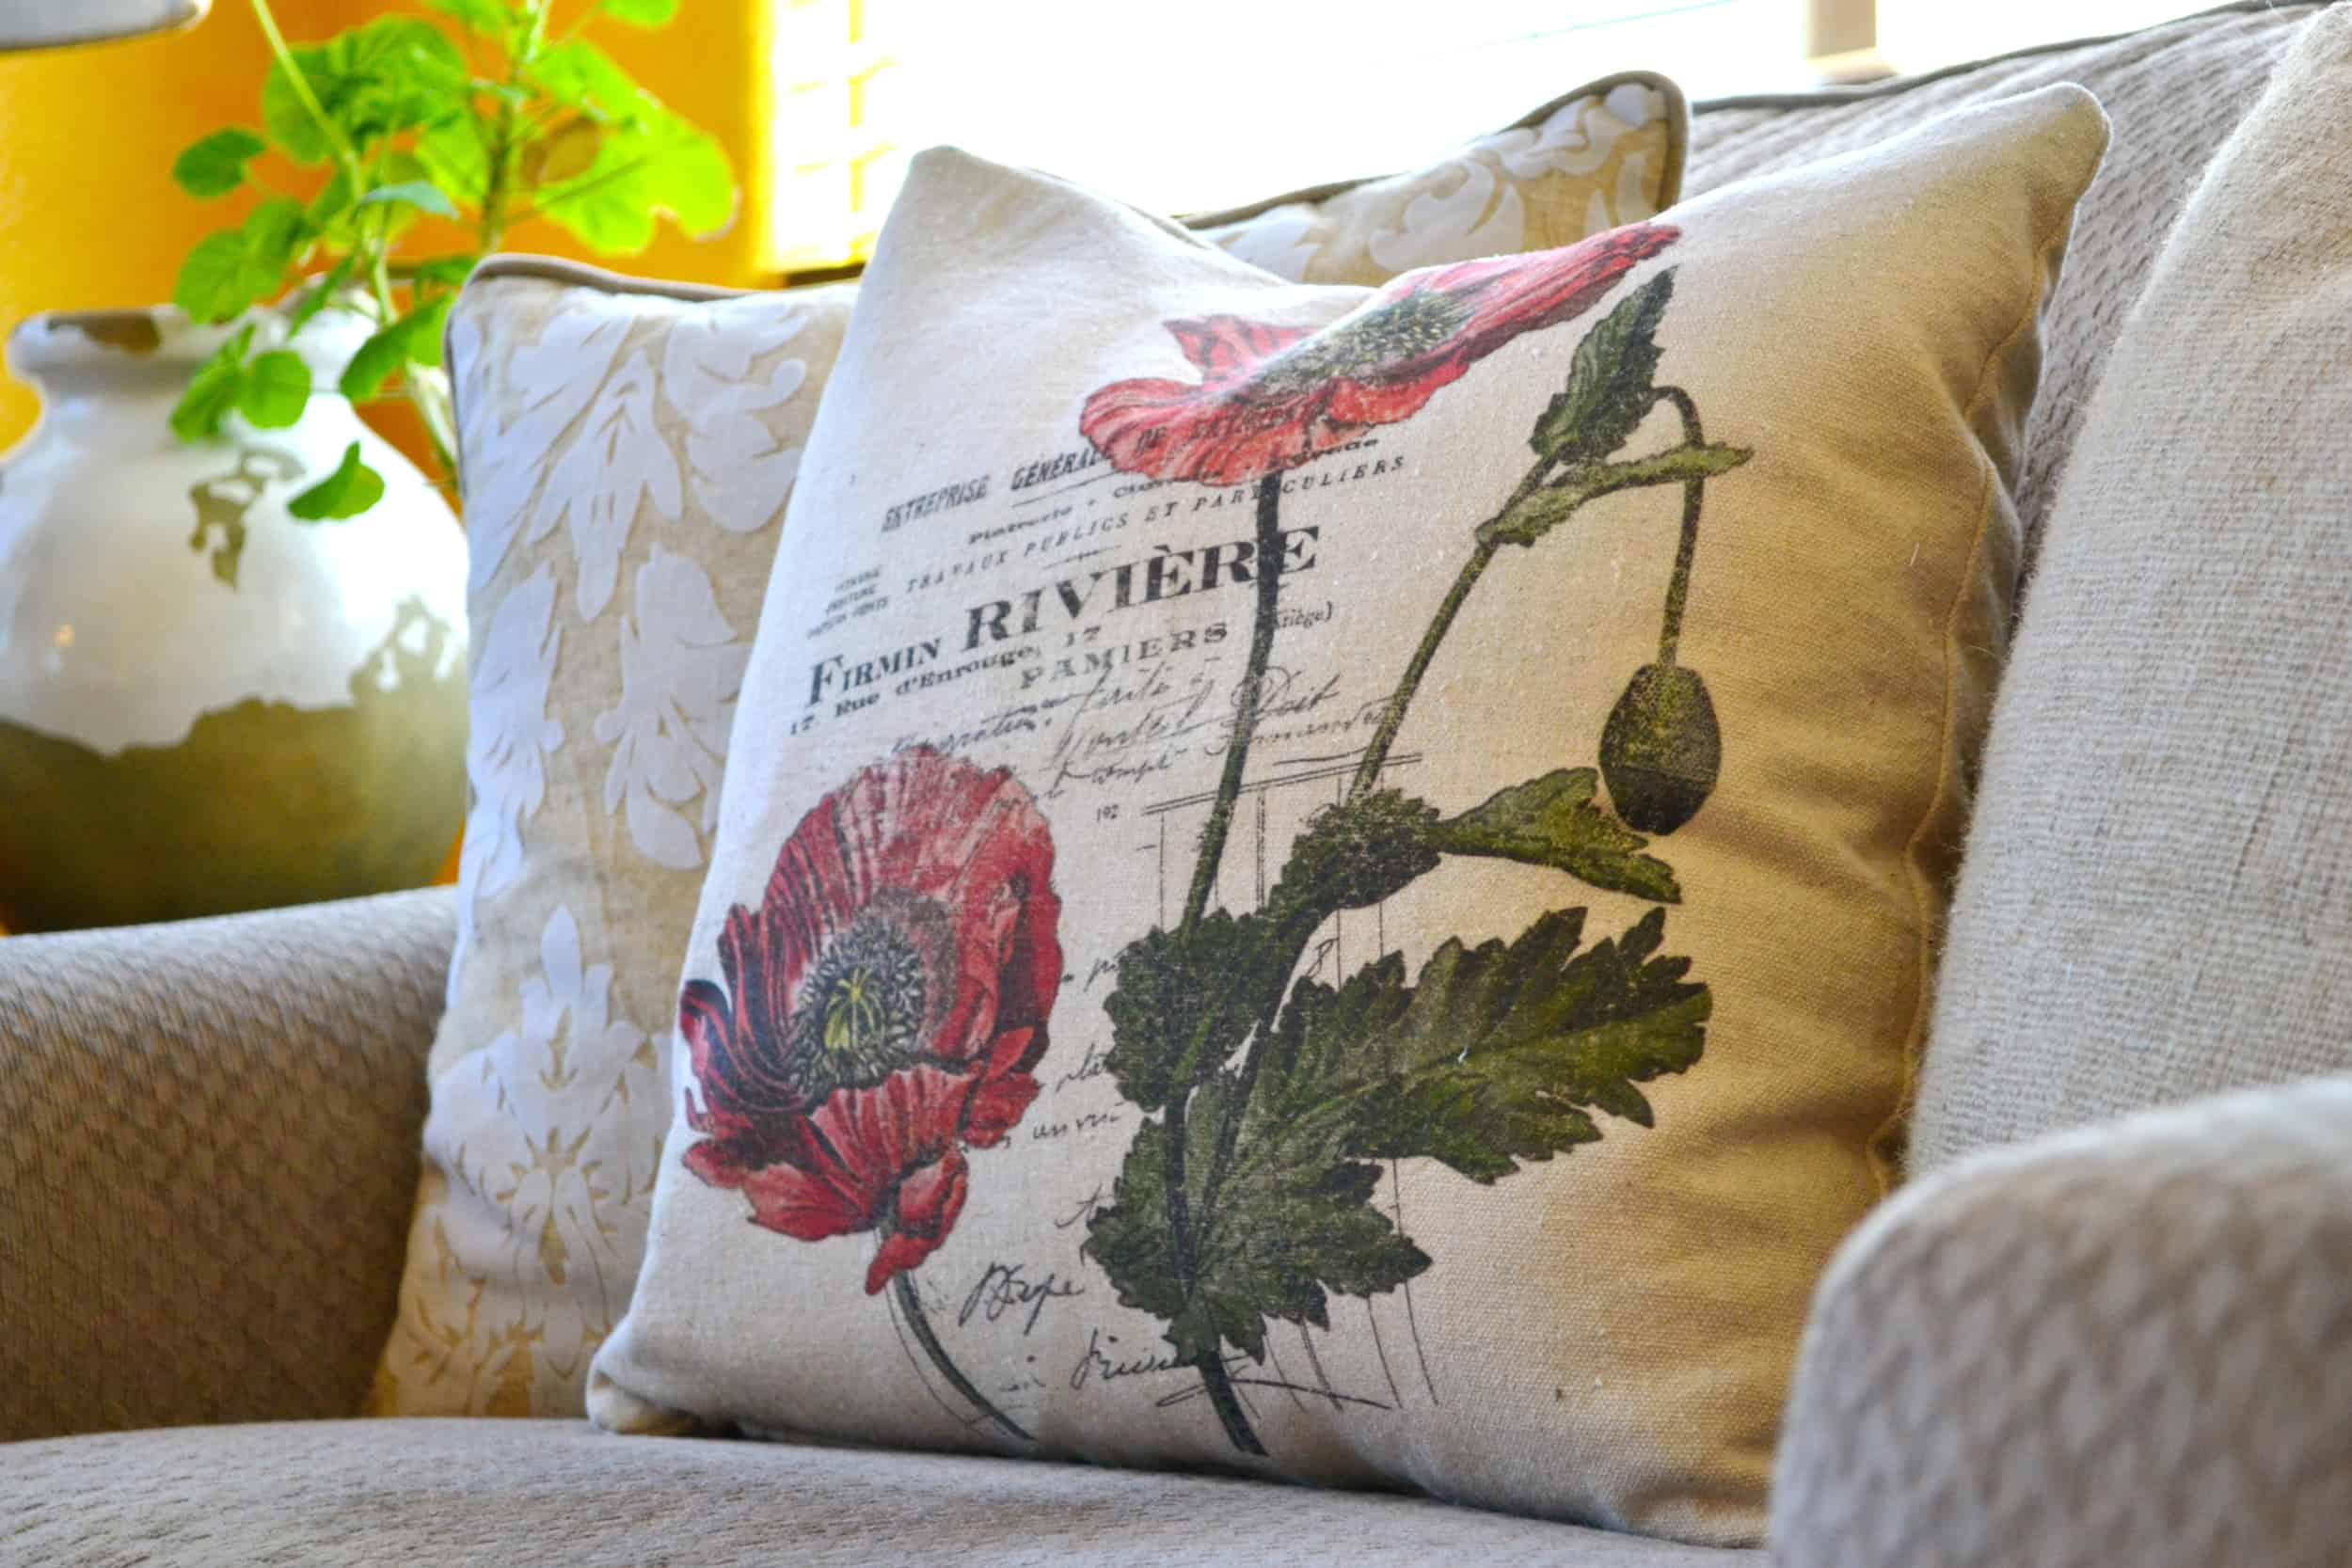 One of my pillows - oh,how styles have changed!